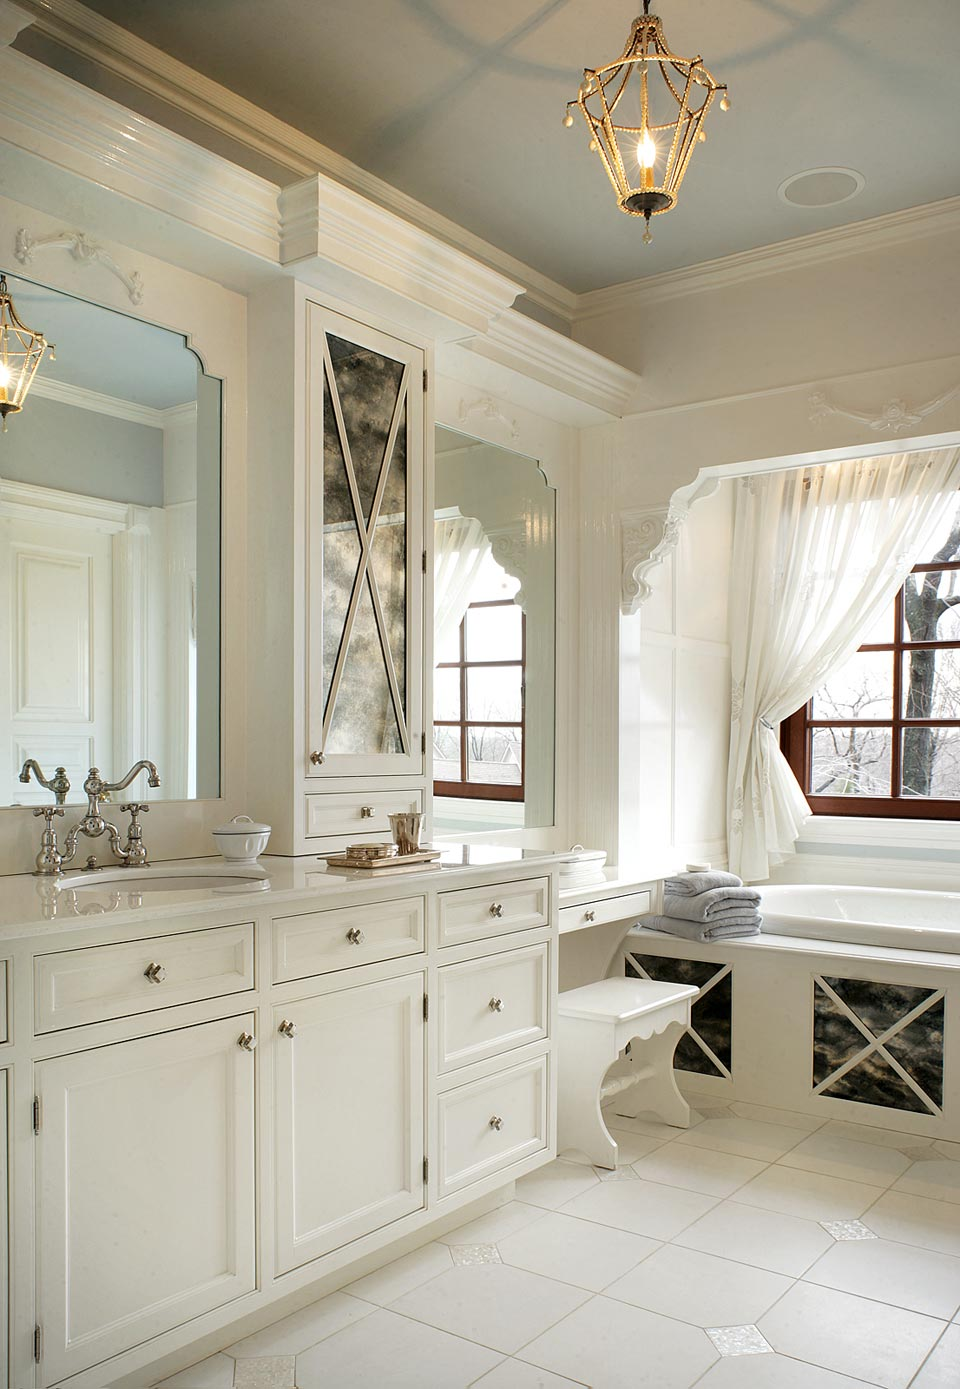 Traditional Bathrooms 11 Awesome Traditional Bathroom Designs - Awesome 11